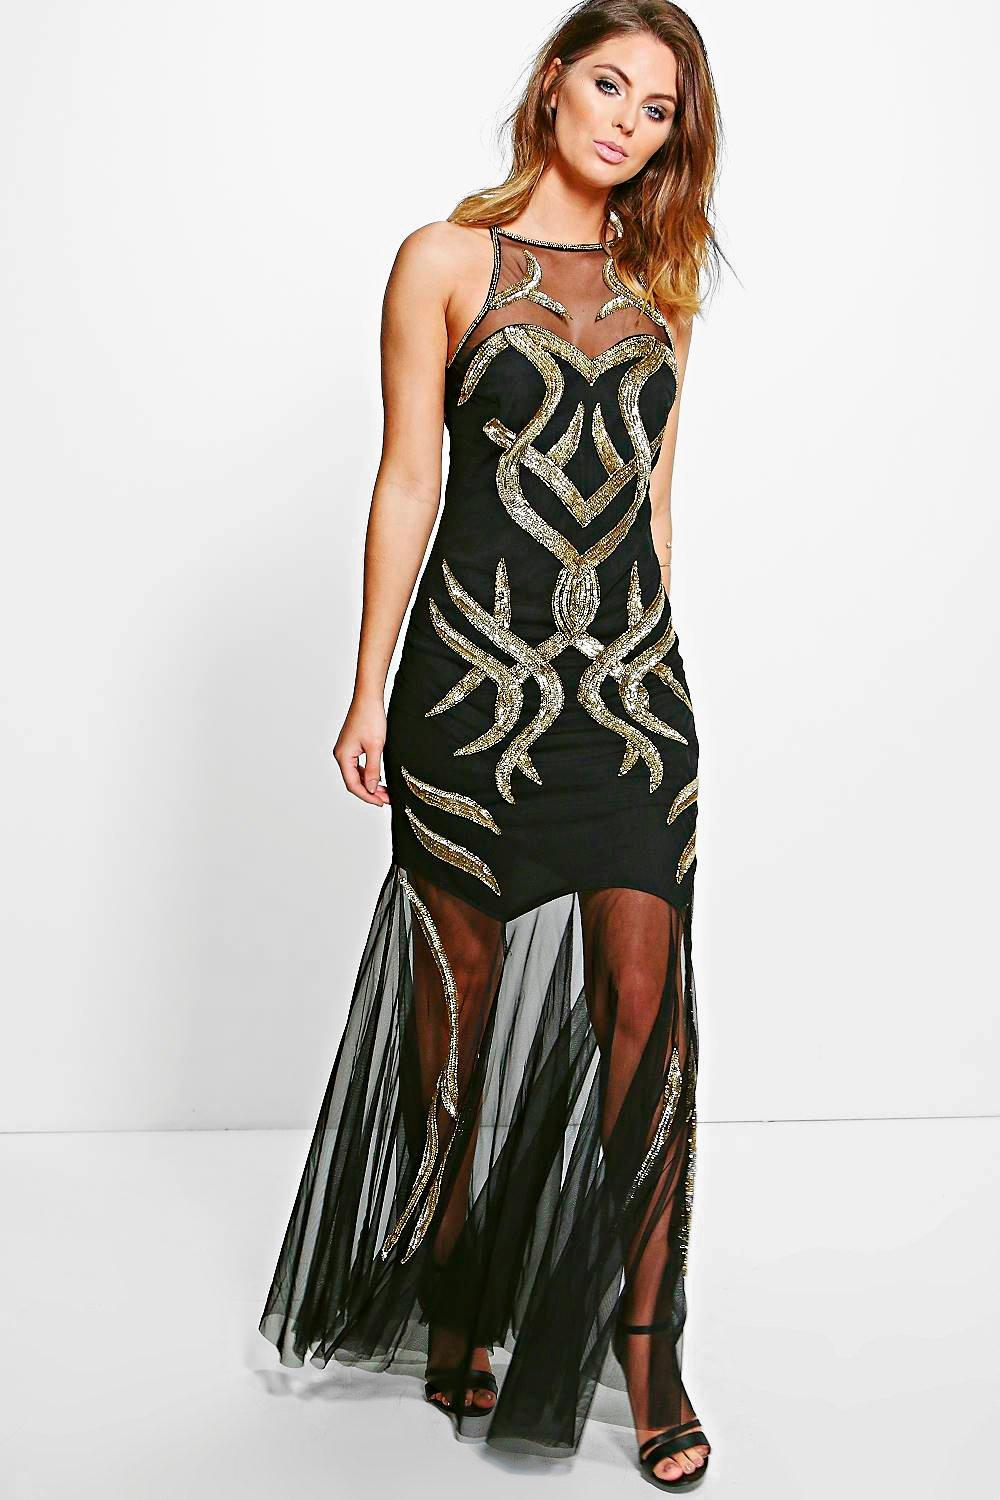 2416285bd4c9 4) Embellished Maxi Dress. Asos.com priced at €47.50. Available in sizes 10  and 12.